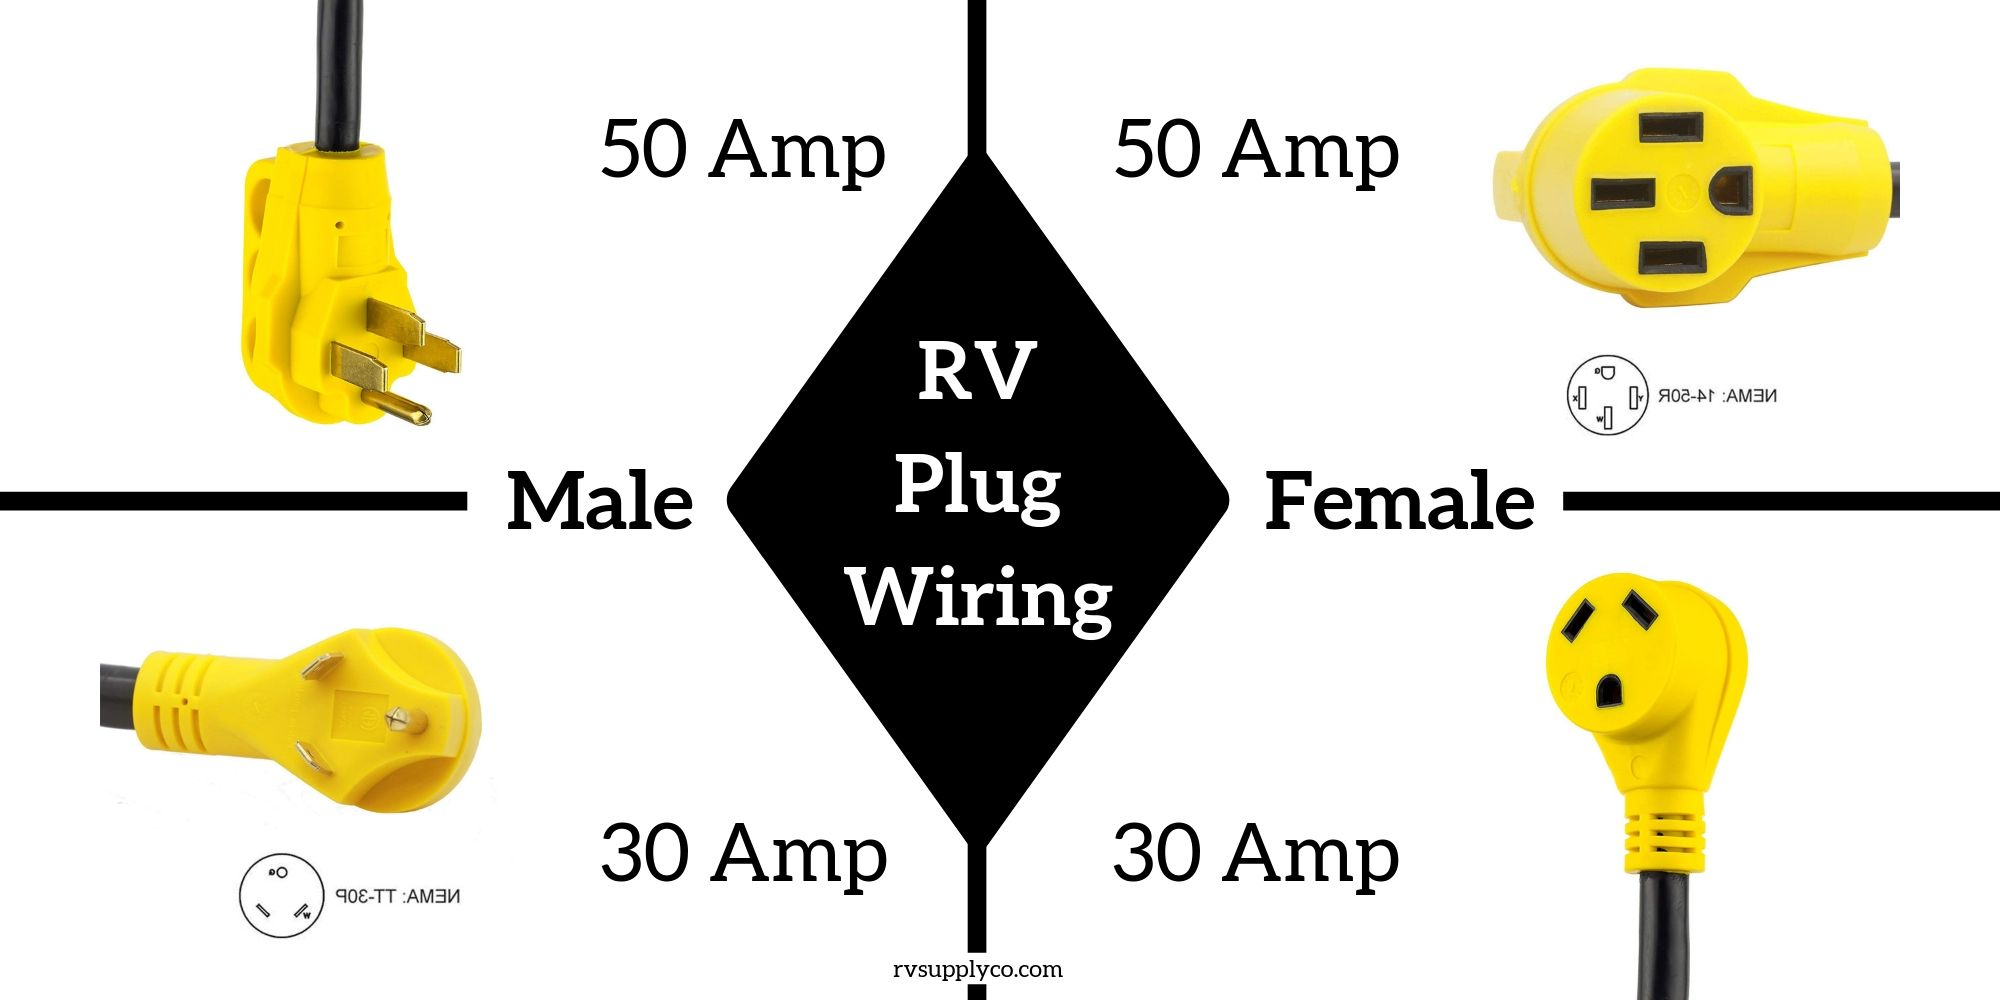 Ultimate Guide To RV Wiring, Outlets, & Plugs (For All Skill Levels)RV SUPPLY Co